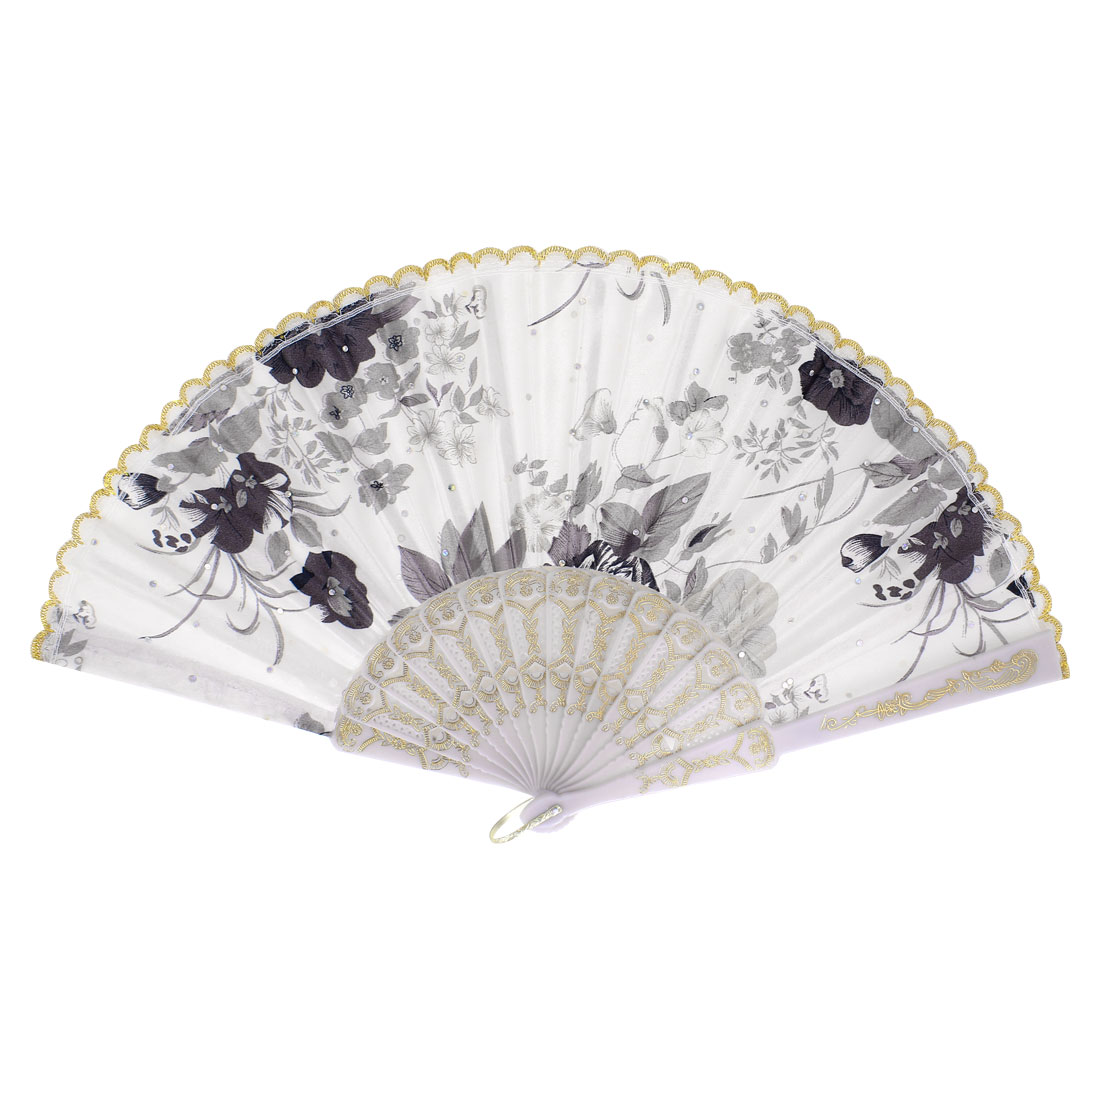 Handmade Chinese Flower Pattern Lace Silk Glittery Squins Decoration Folding Hand Fan Tri Color